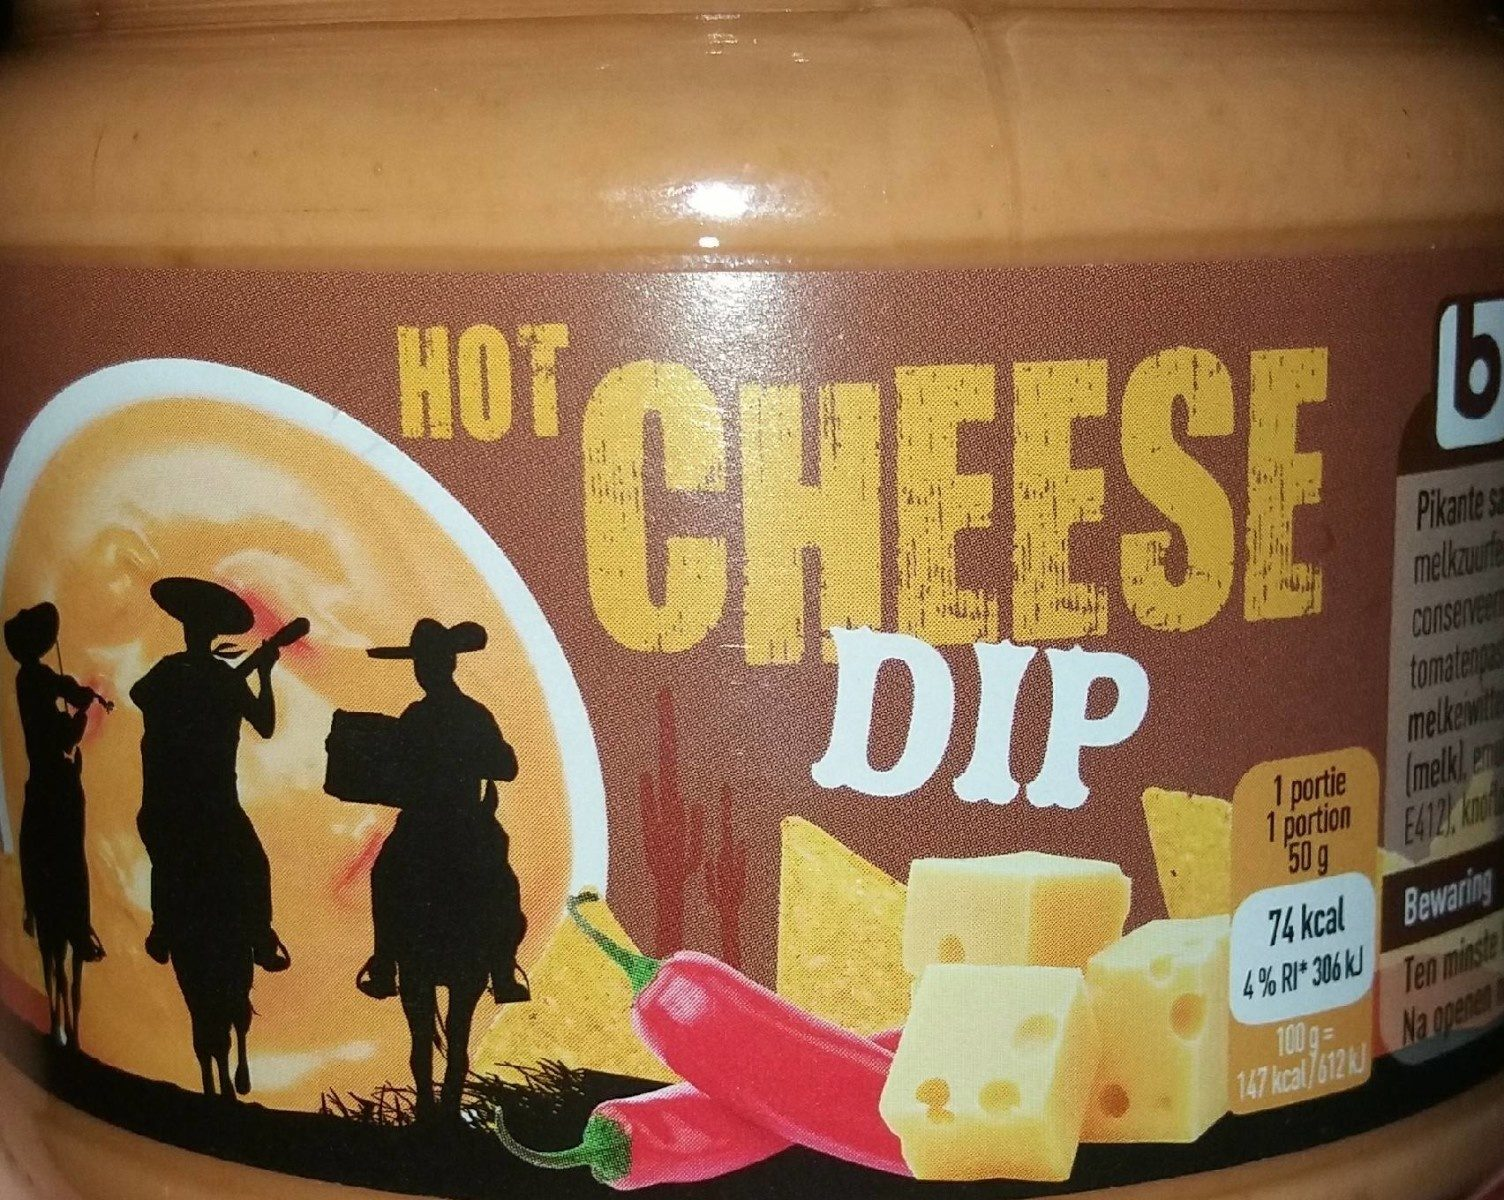 Hot cheese dip - Product - fr